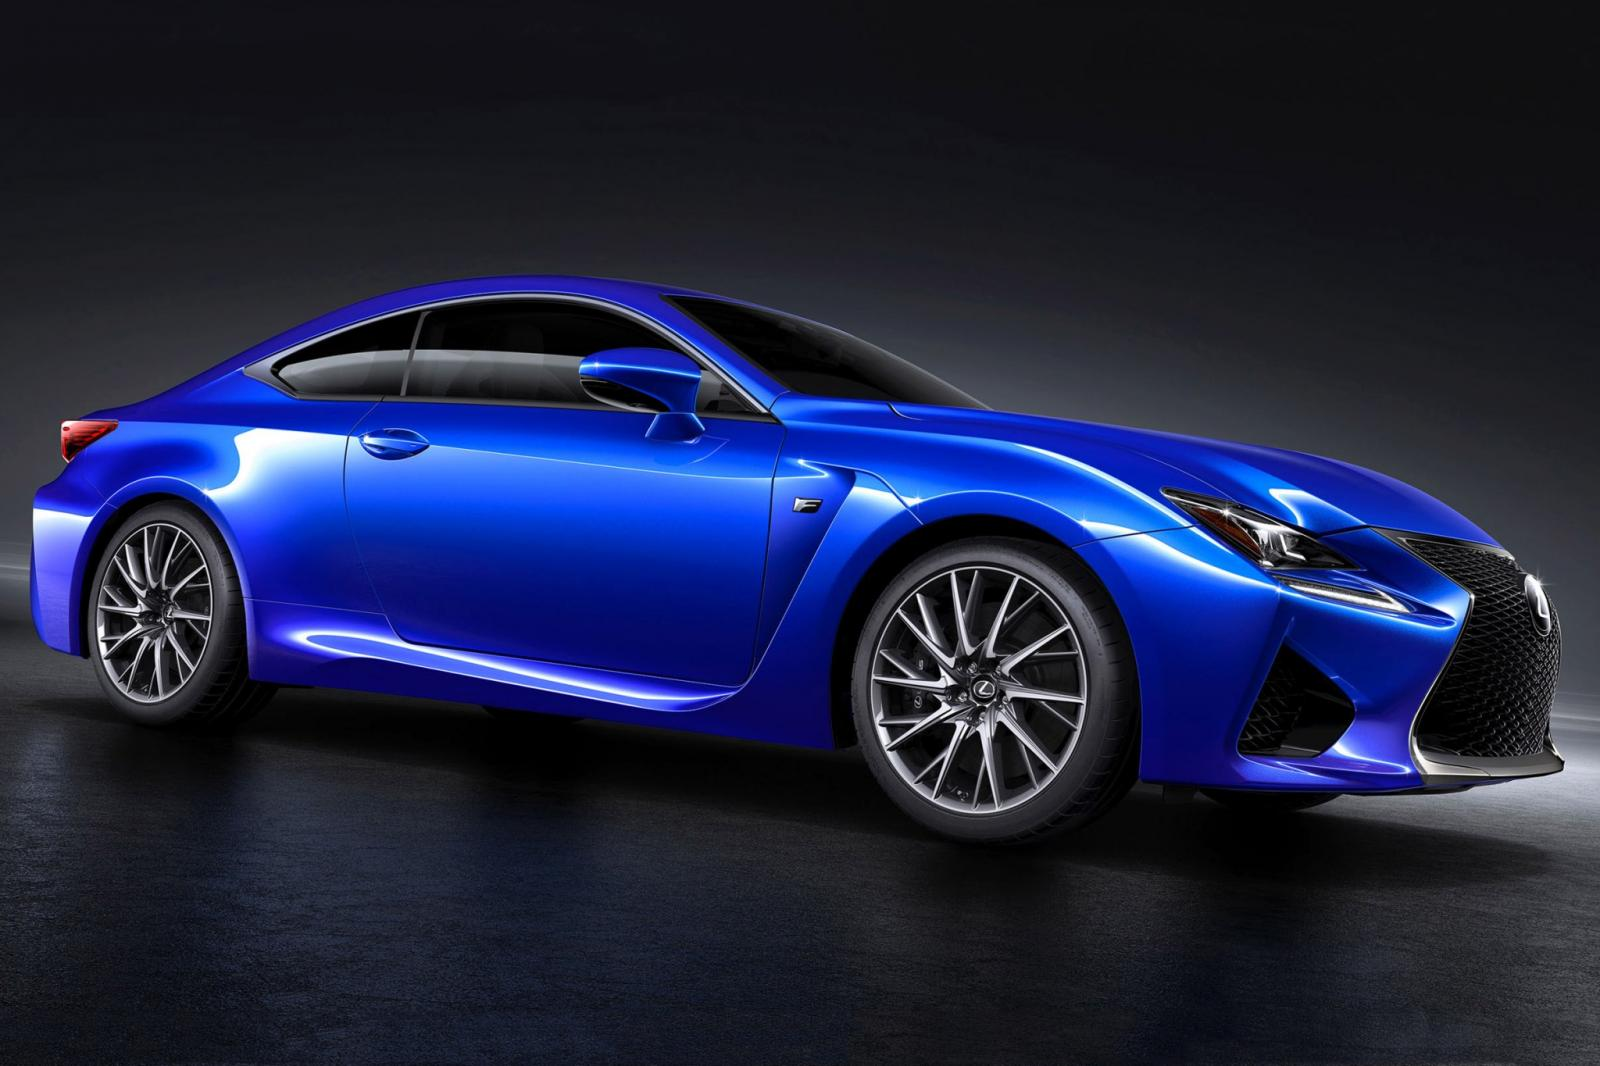 of in j a been advance power nx s suv cars this lineup has lexus likely cylinder have model is not released car engine the beijing models liter plugs d hole debut articles with equipped news confirmed